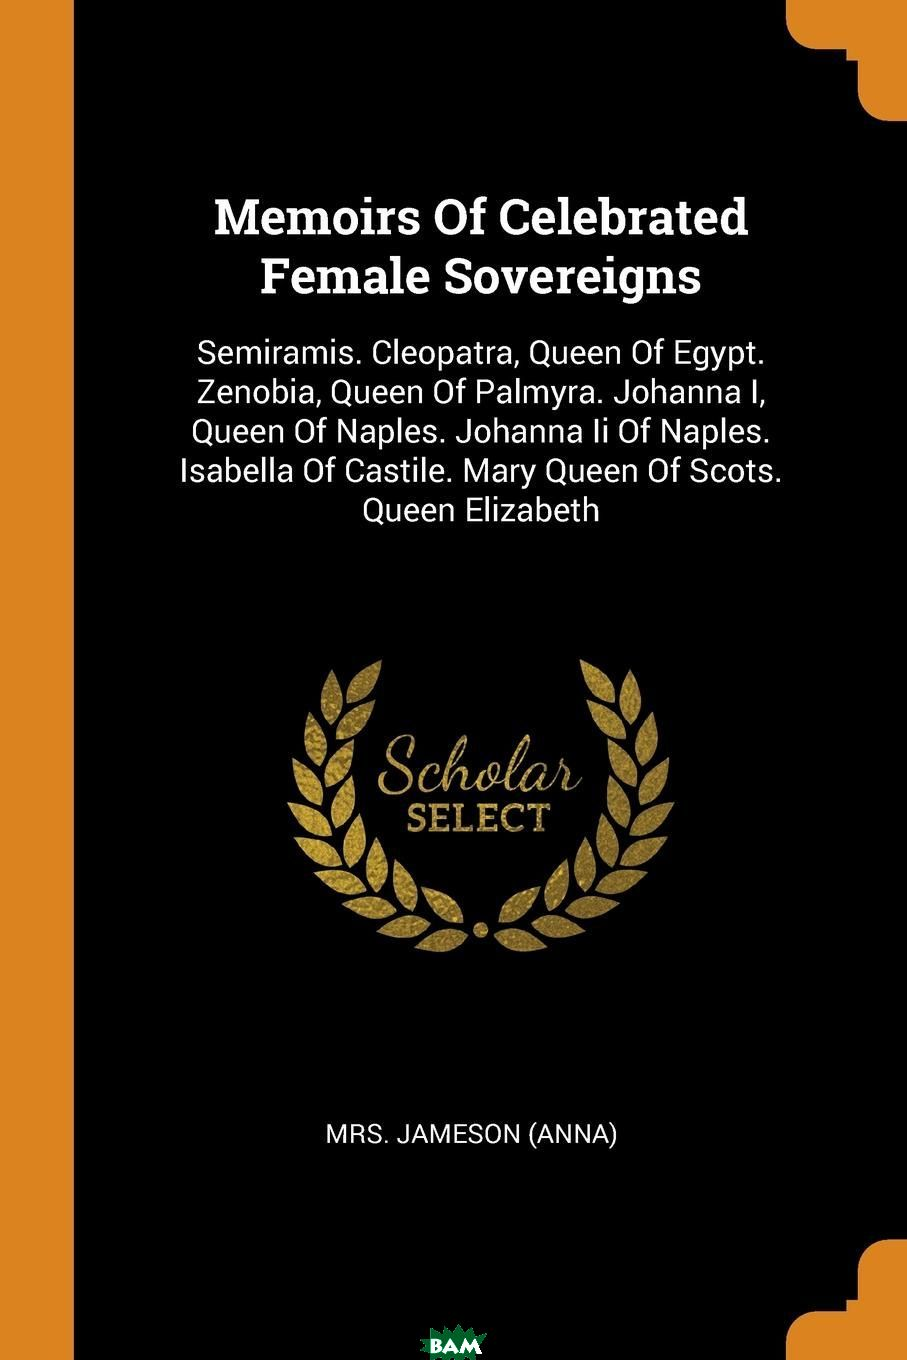 Memoirs Of Celebrated Female Sovereigns. Semiramis. Cleopatra, Queen Of Egypt. Zenobia, Queen Of Palmyra. Johanna I, Queen Of Naples. Johanna Ii Of Naples. Isabella Of Castile. Mary Queen Of Scots. Q, Mrs. Jameson (Anna), 9780353463271  - купить со скидкой